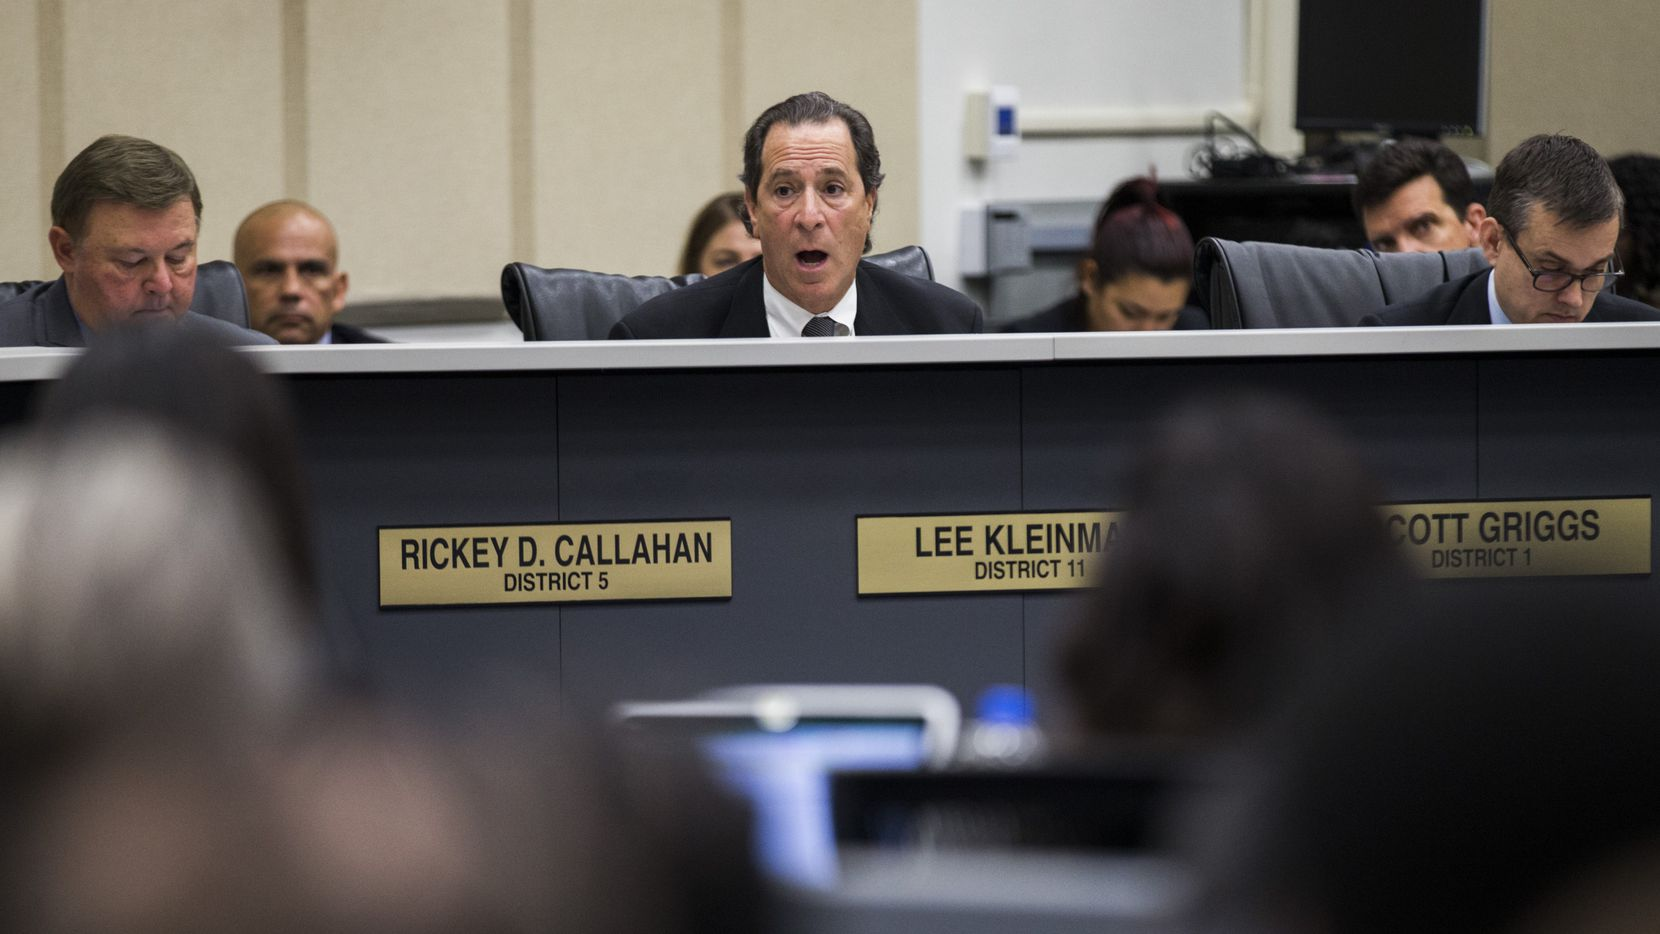 Dallas City Council member Lee Kleinman was the only council member to publicly oppose giving raises to Dallas public safety workers.